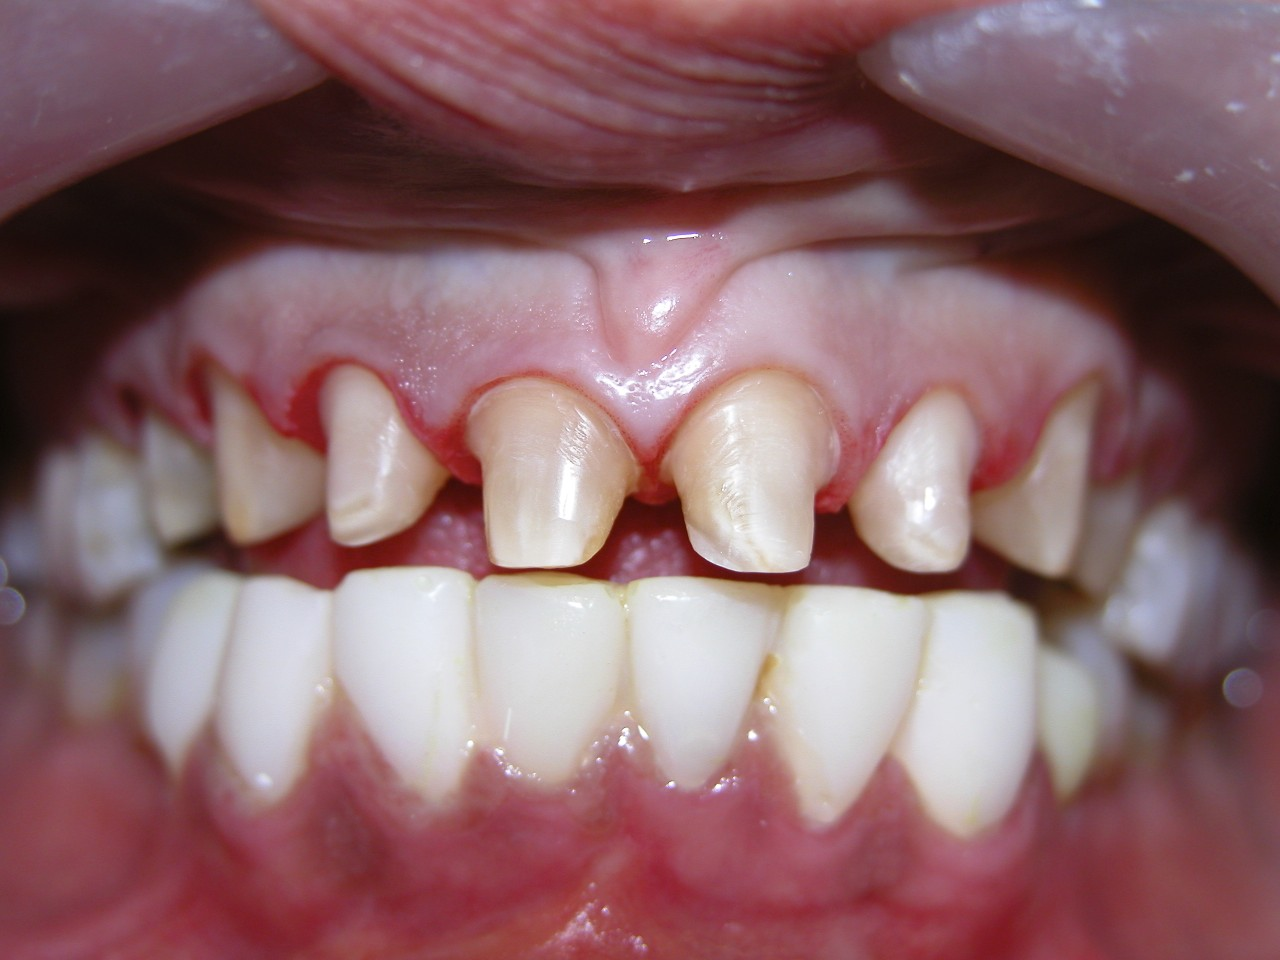 How do you get ultra white teeth? Anyone with super white teeth here? - The Student Room